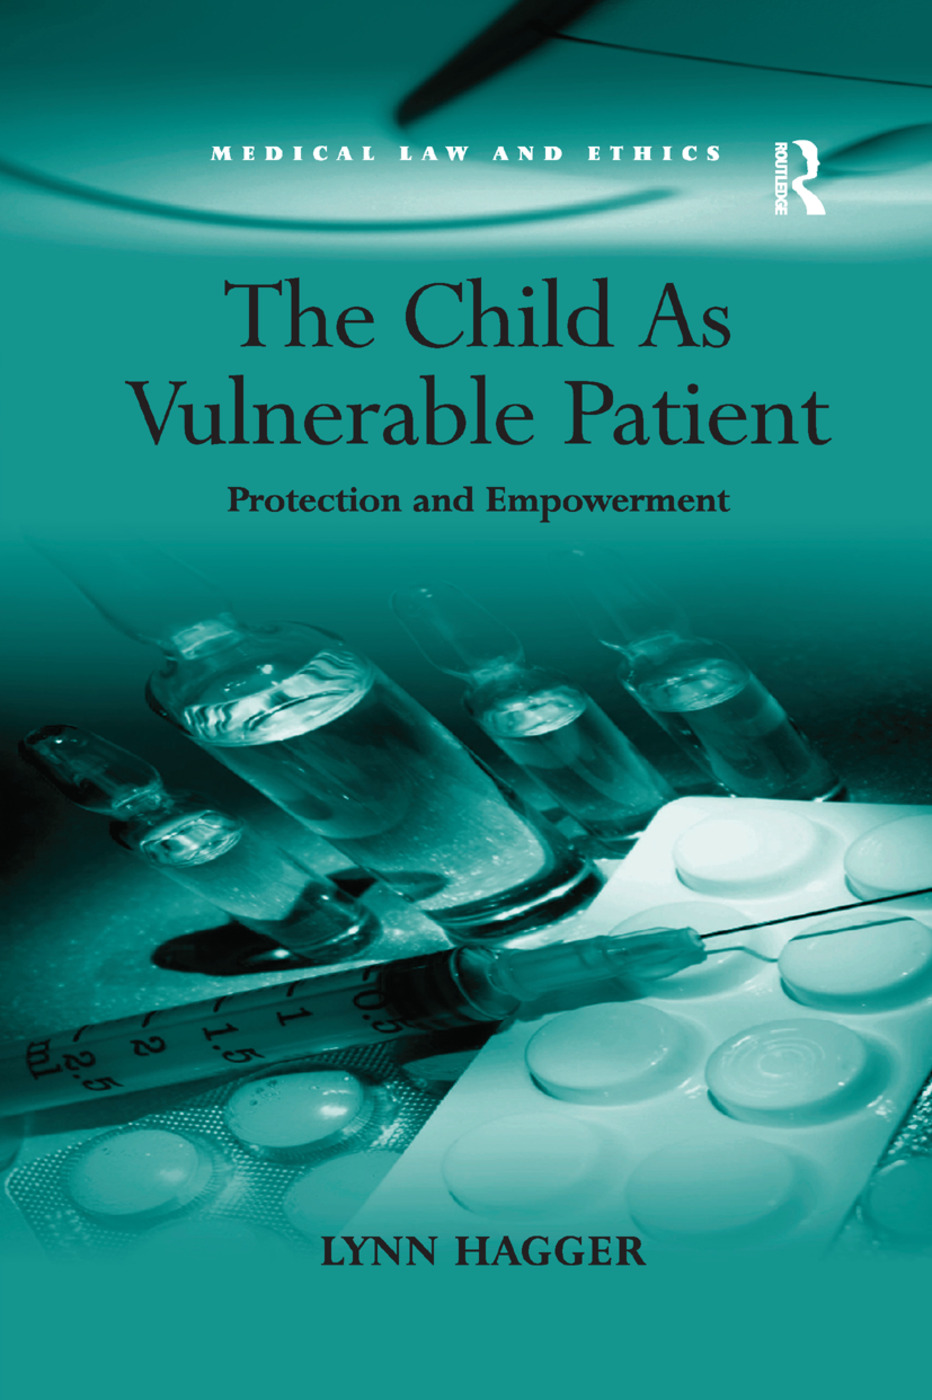 The Child As Vulnerable Patient: Protection and Empowerment book cover